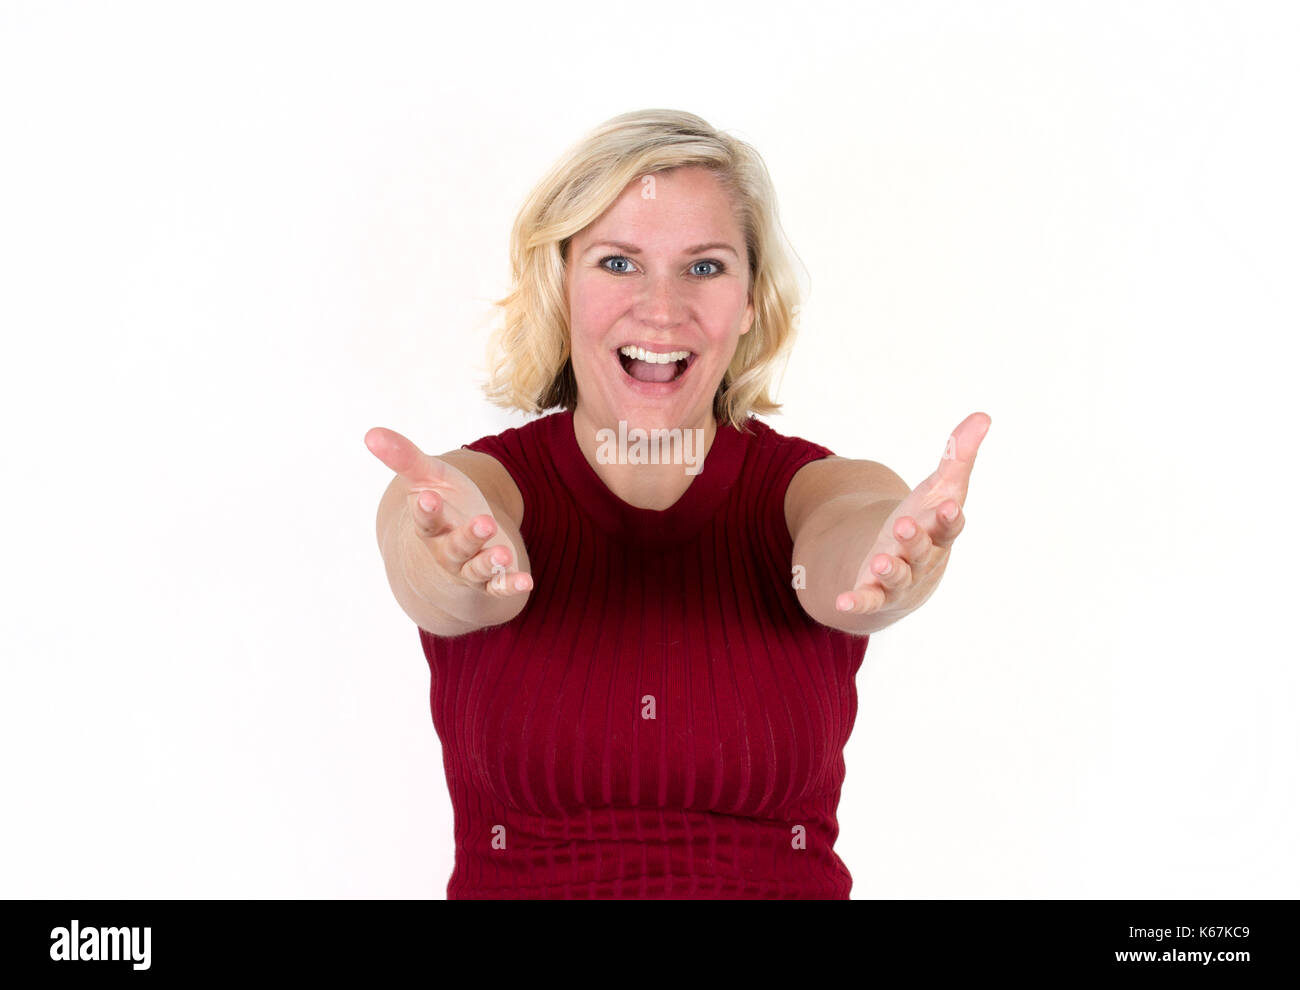 a blonde woman smiles with arms outstretched in a welcome, inviting expression - Stock Image